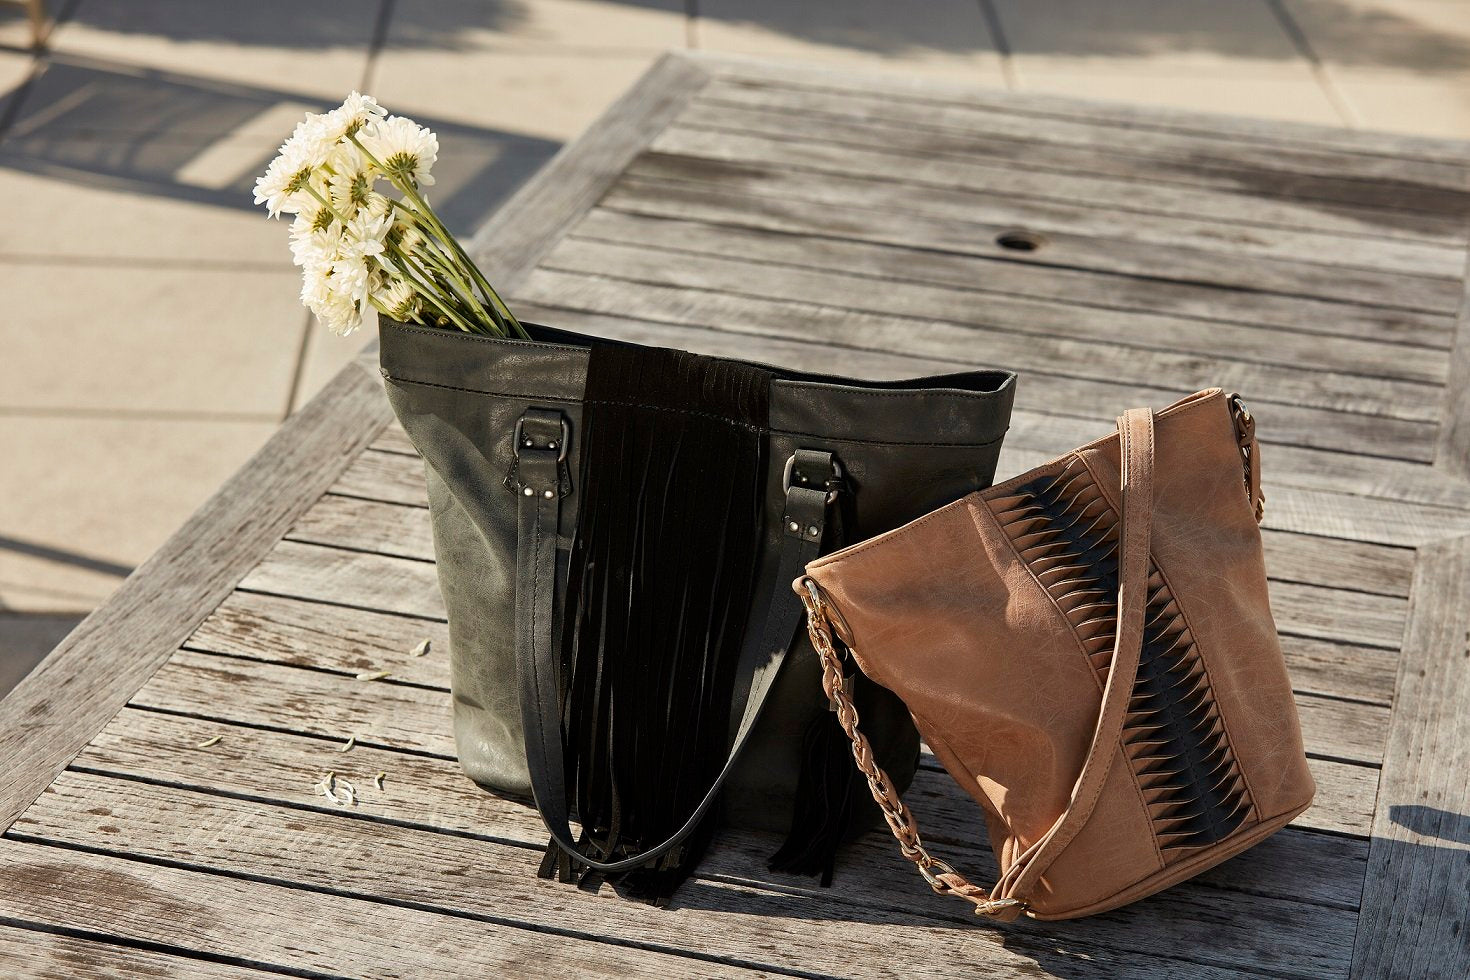 Dolce Vita Handbags x CHASE BUCKET IN LATTE